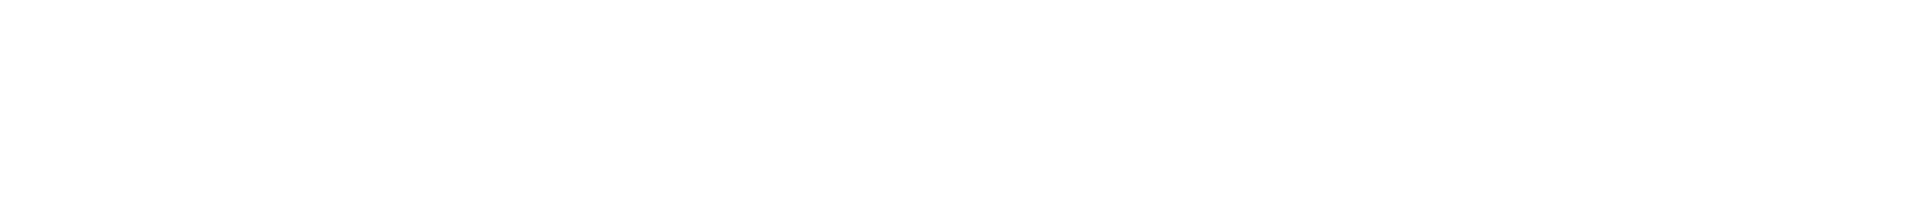 institutional research and reporting wordmark